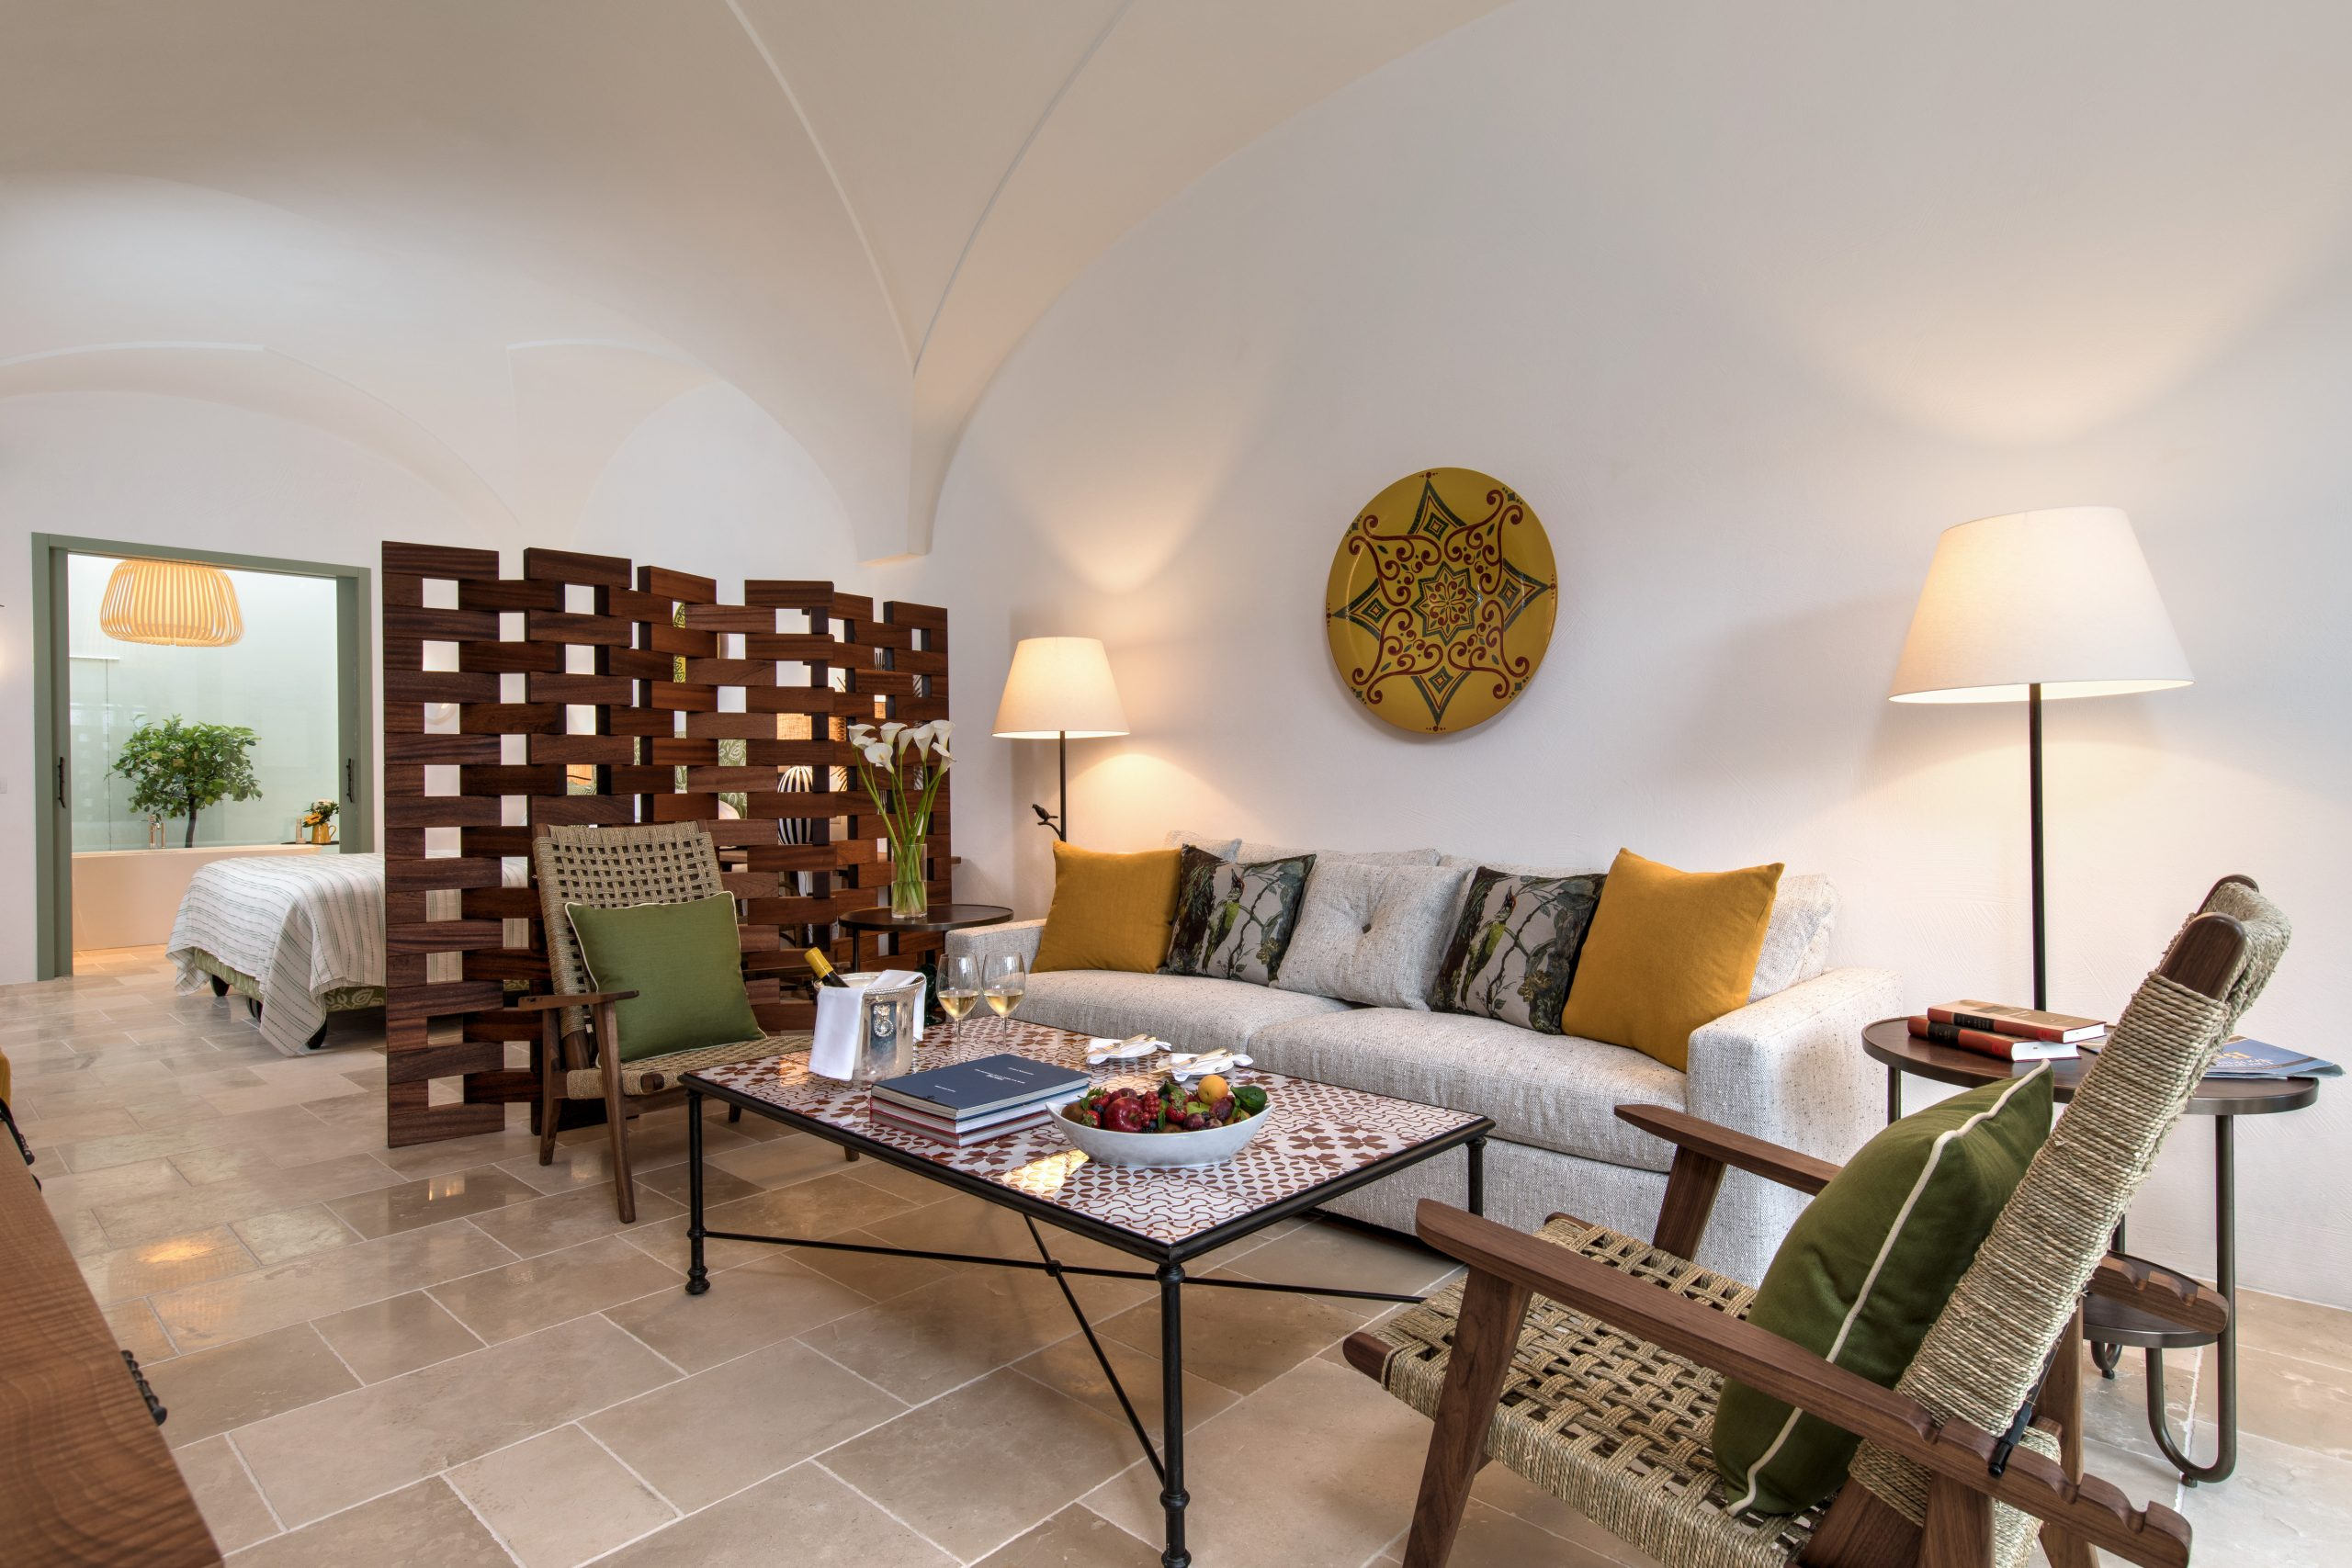 RFH Masseria Torre Maizza - Deluxe Junior Suite 8313 JG May 19